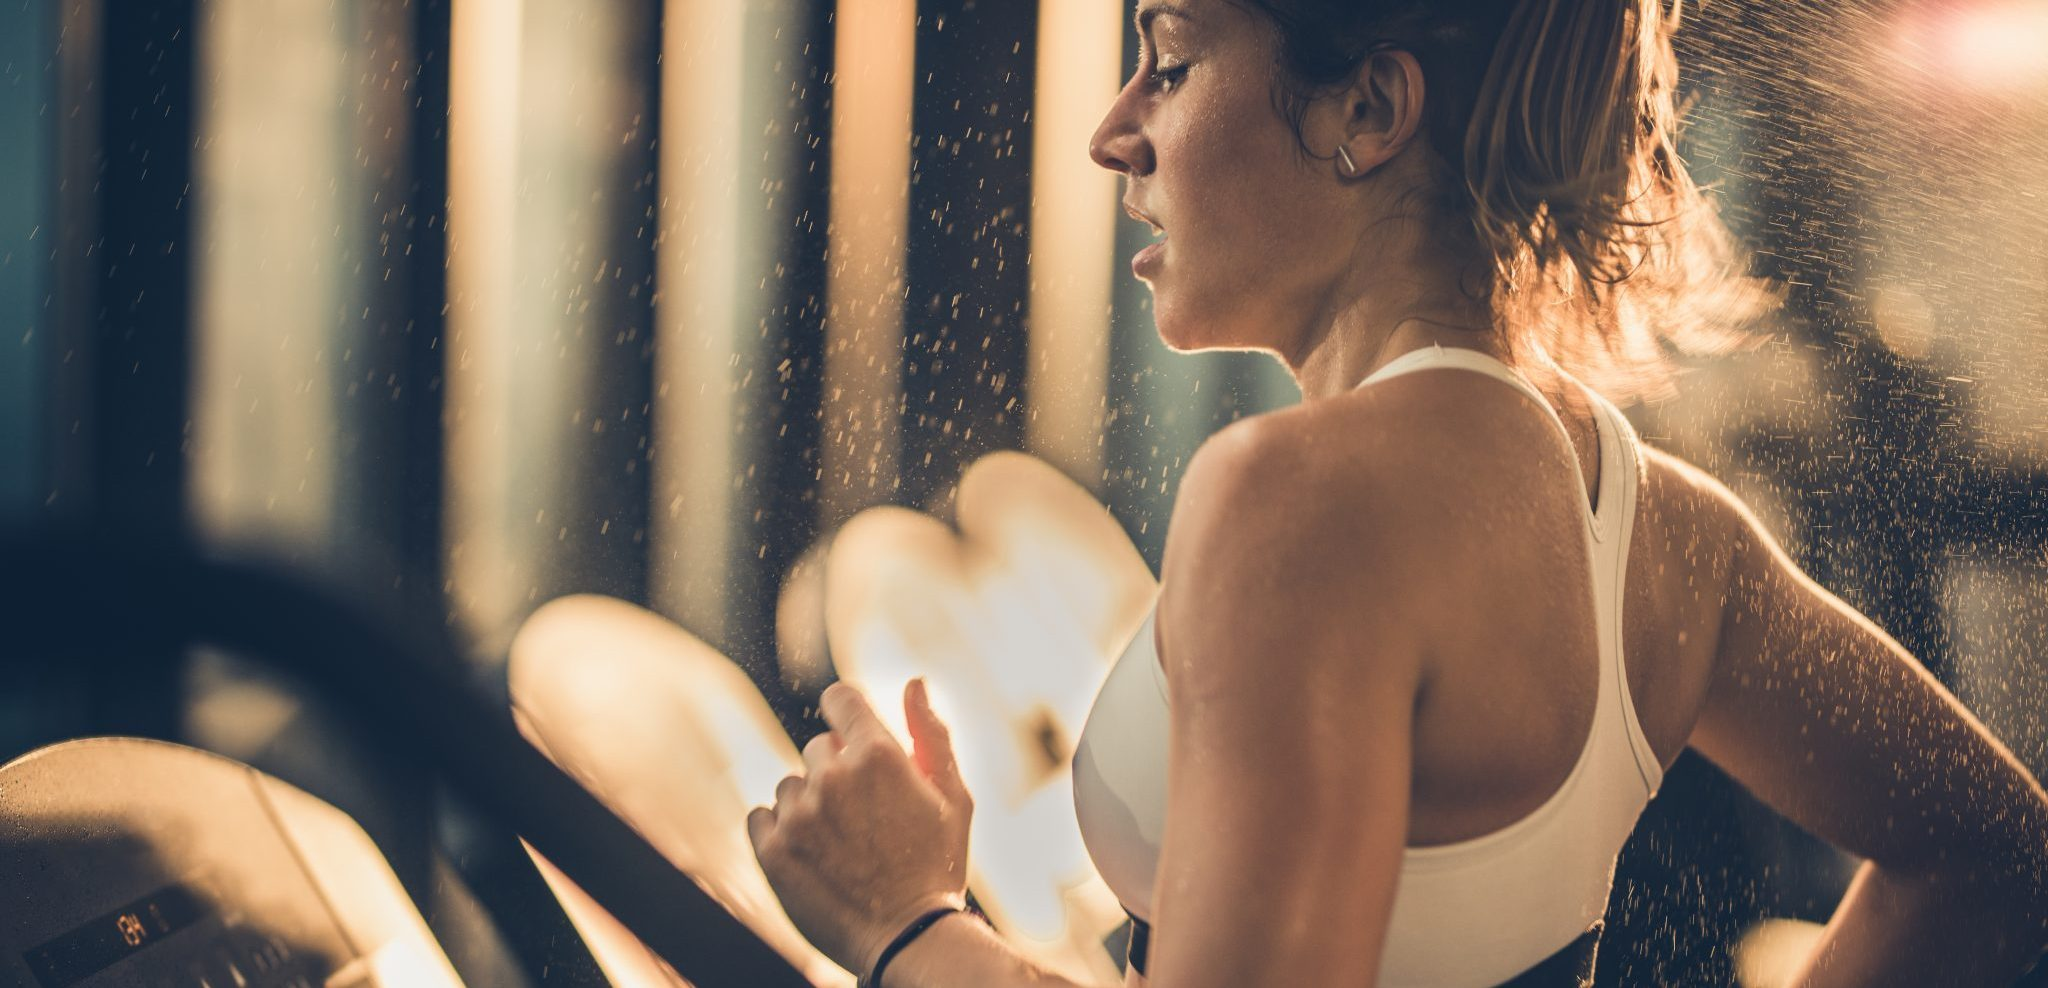 Not Sweating During a Workout? Here's When to Worry